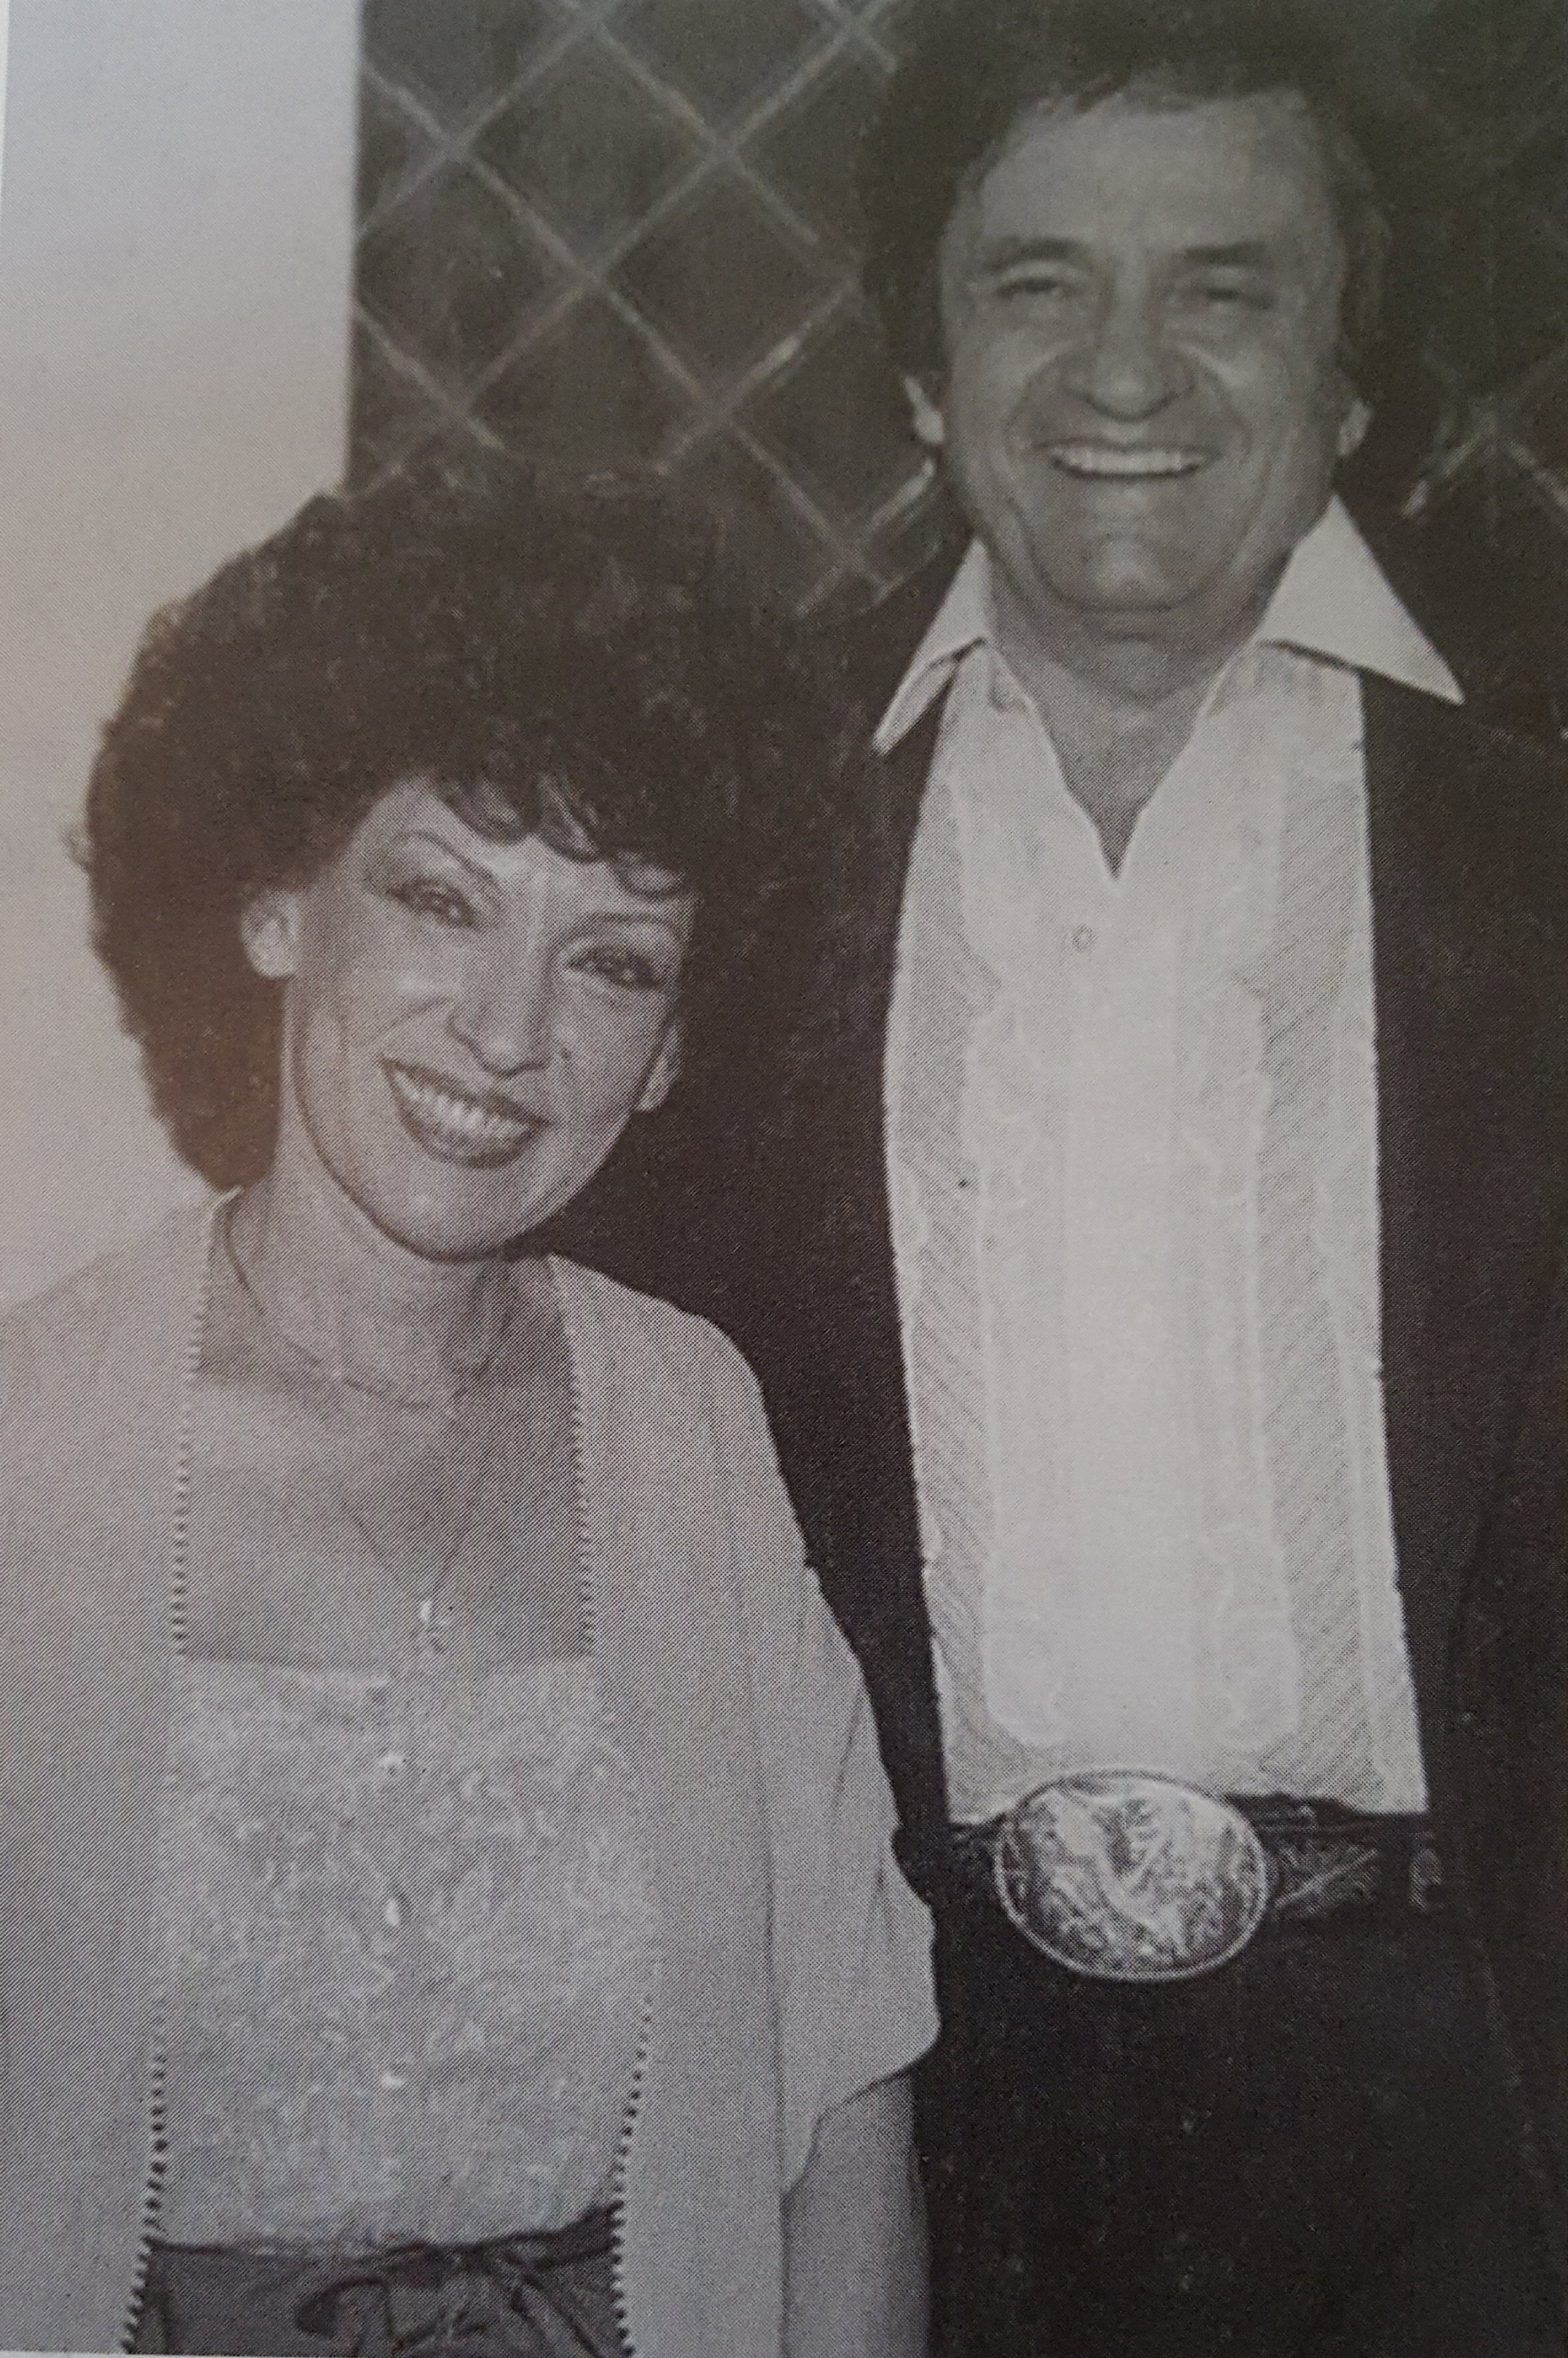 Dottie and Johnny Cash 1983